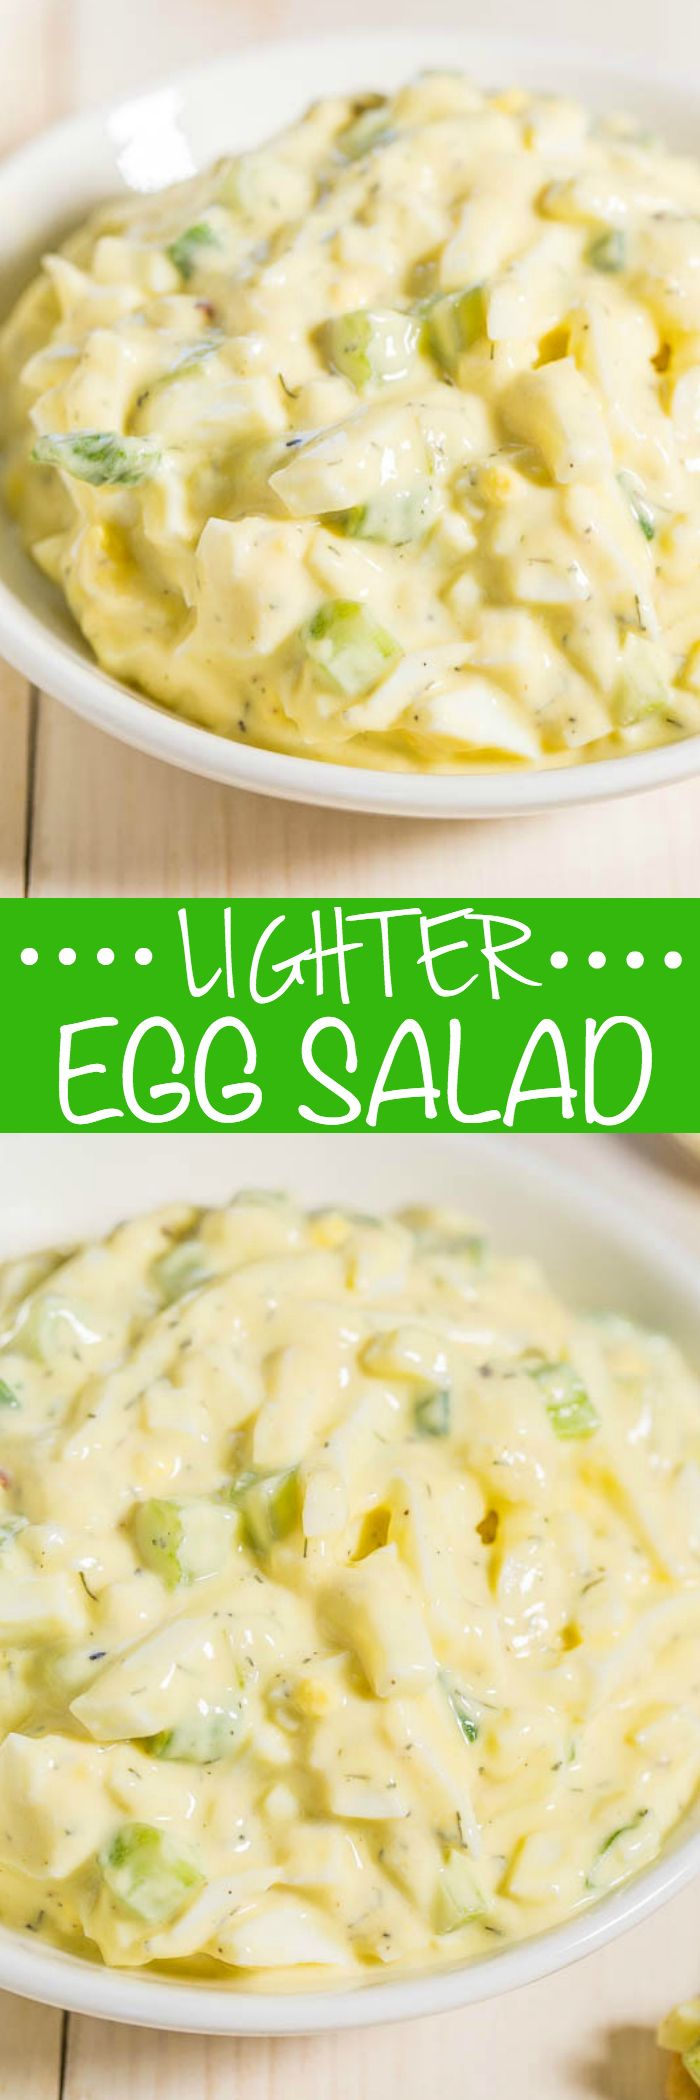 Lighter Egg Salad - All the flavor of traditional egg salad minus the fat and calories! Made with 0% fat Greek yogurt to keep it creamy and wayyy healthier!!